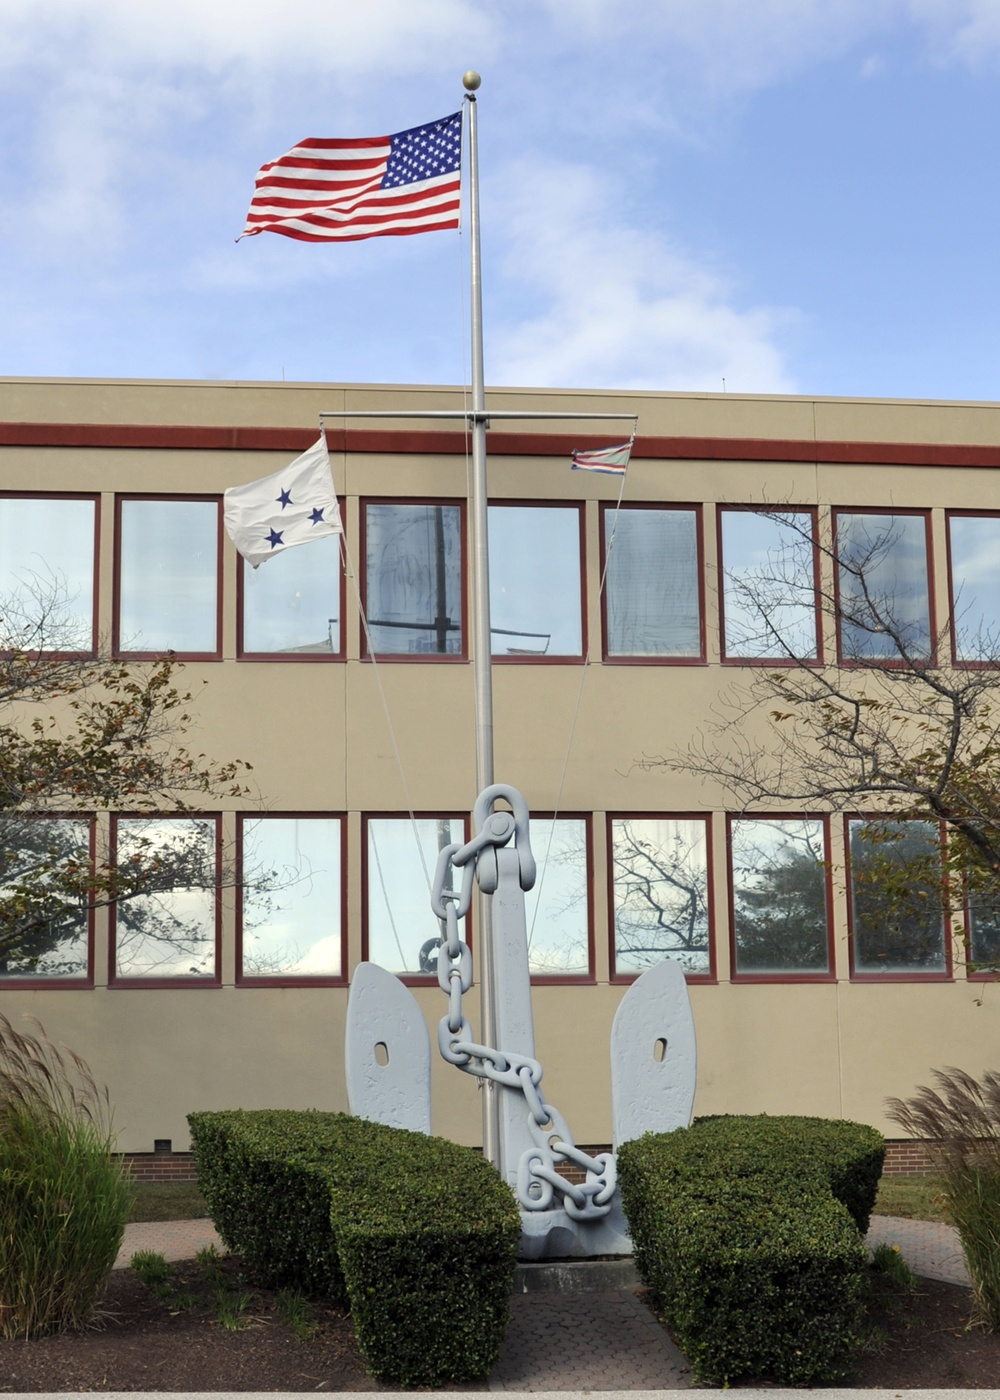 US Fleet Cyber Command celebrating 5 years of operations